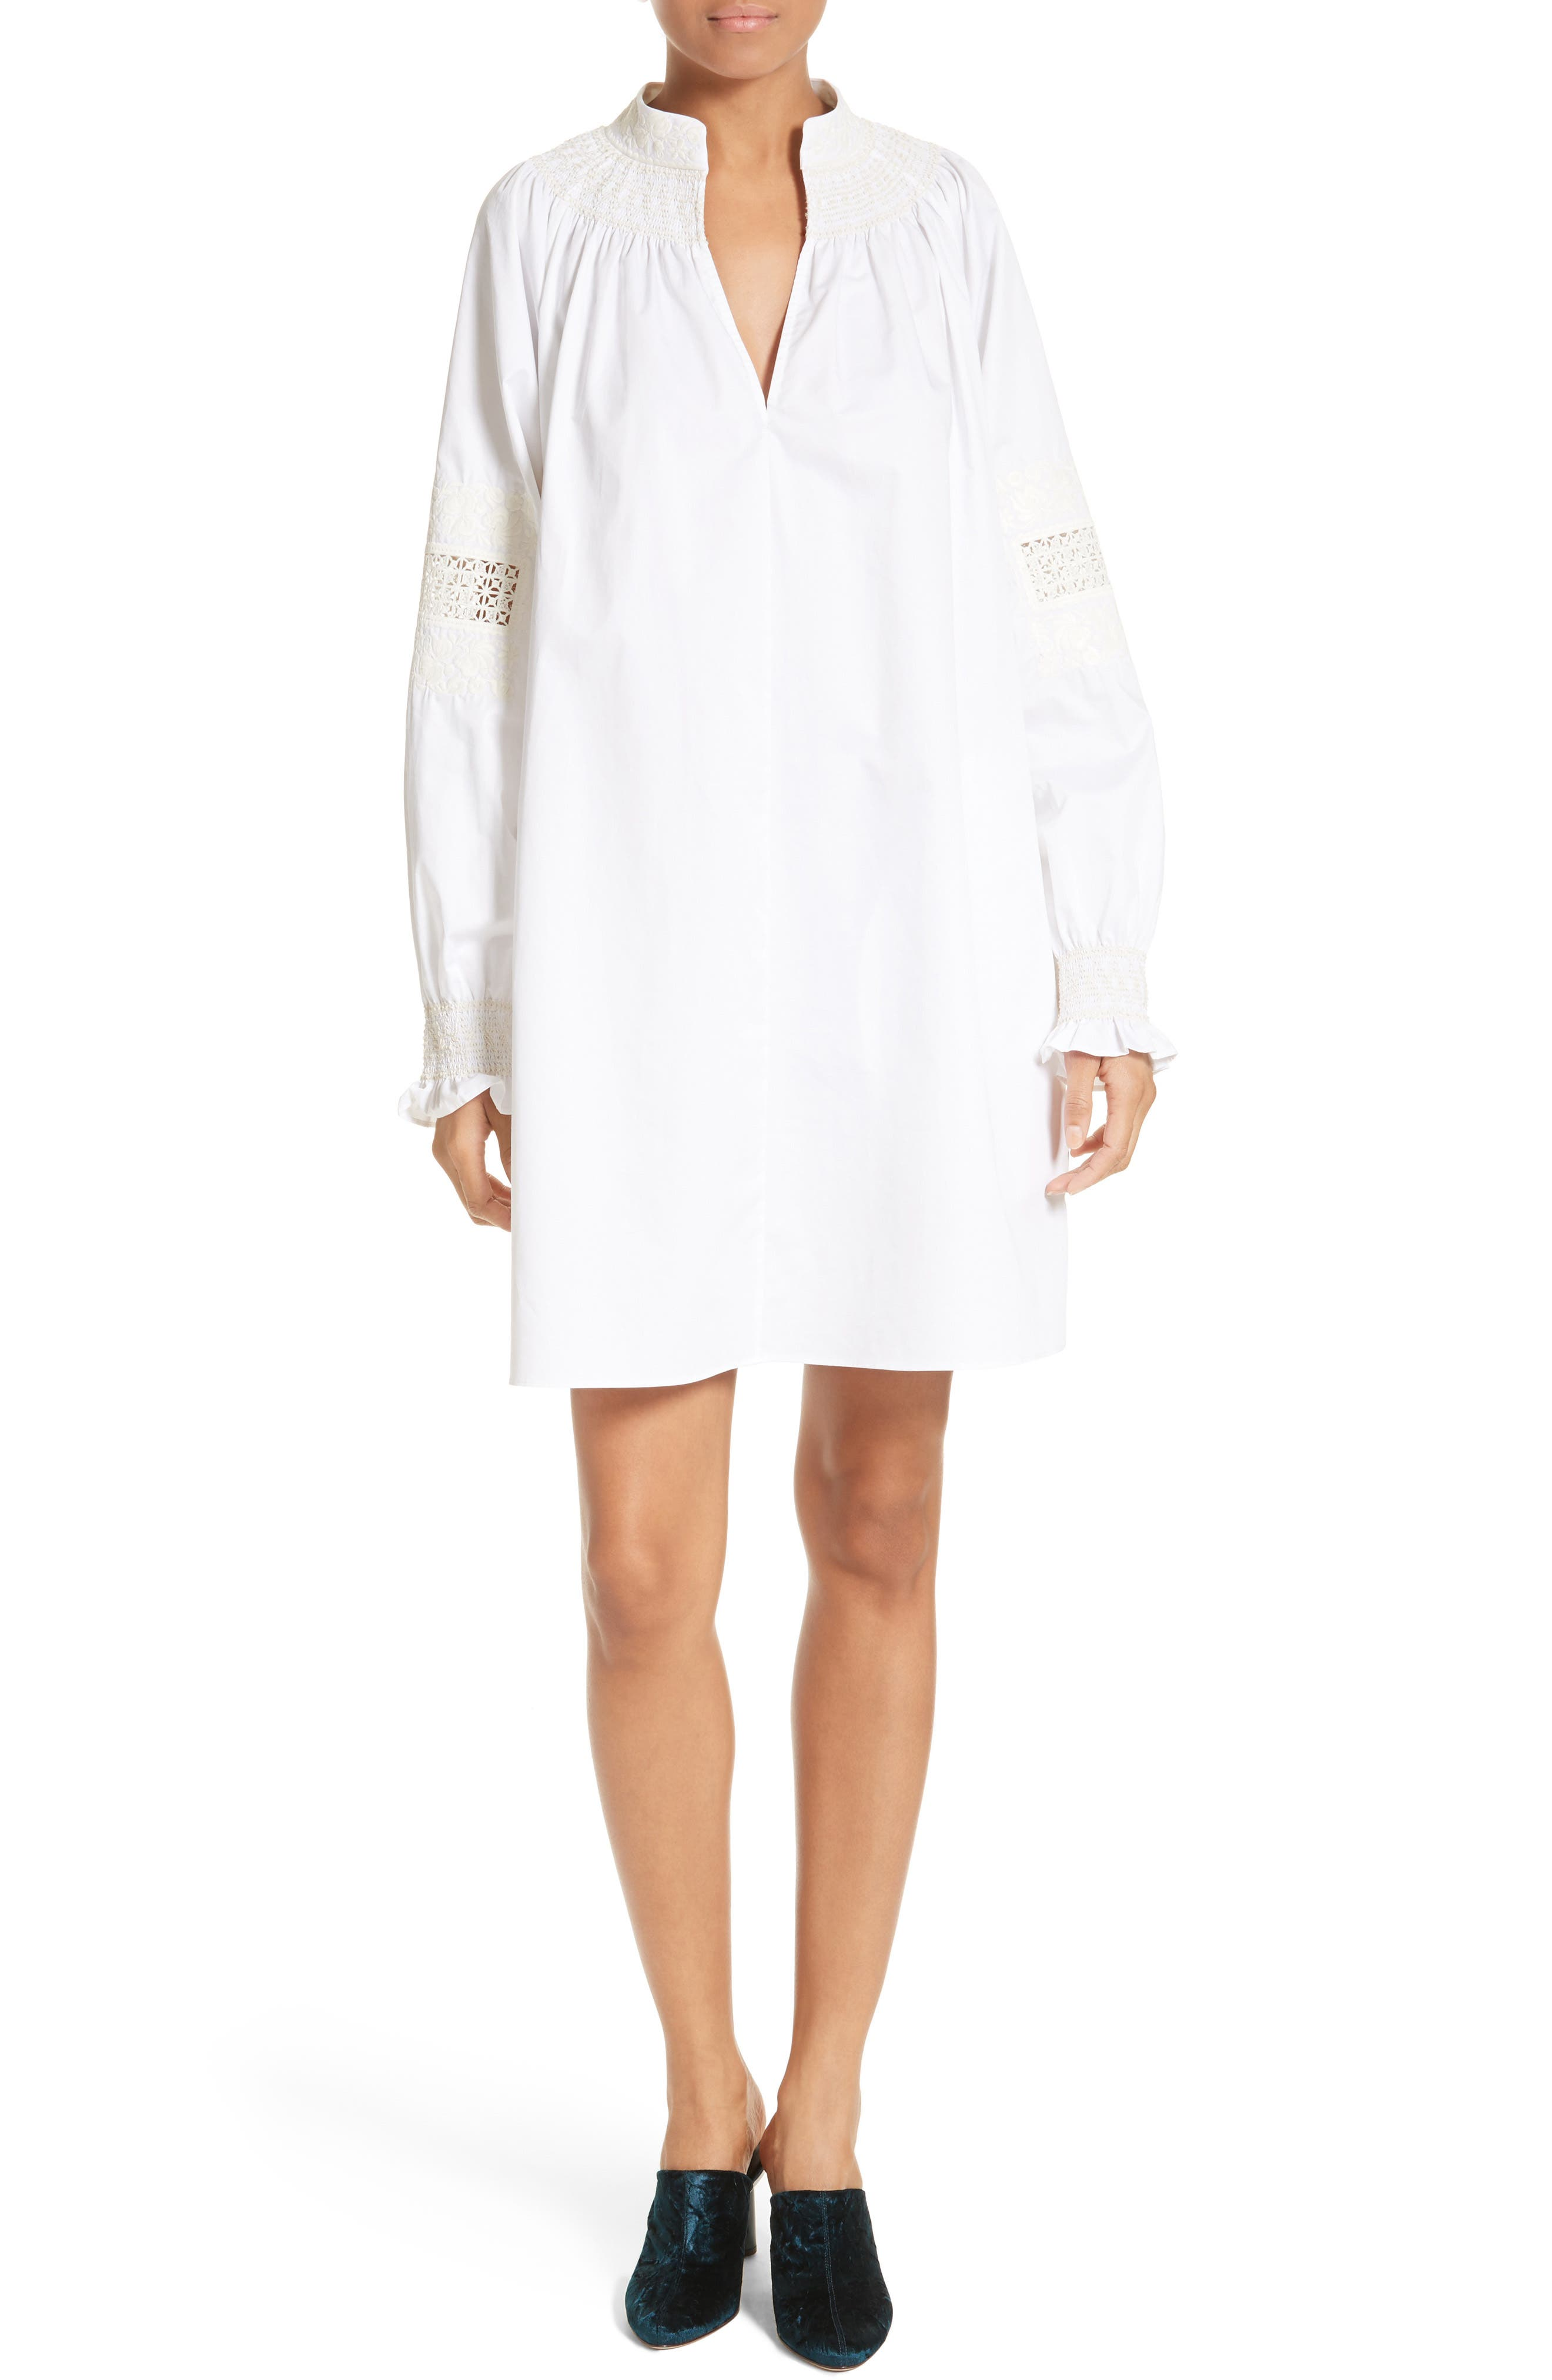 Tibi Smocked Tunic Dress